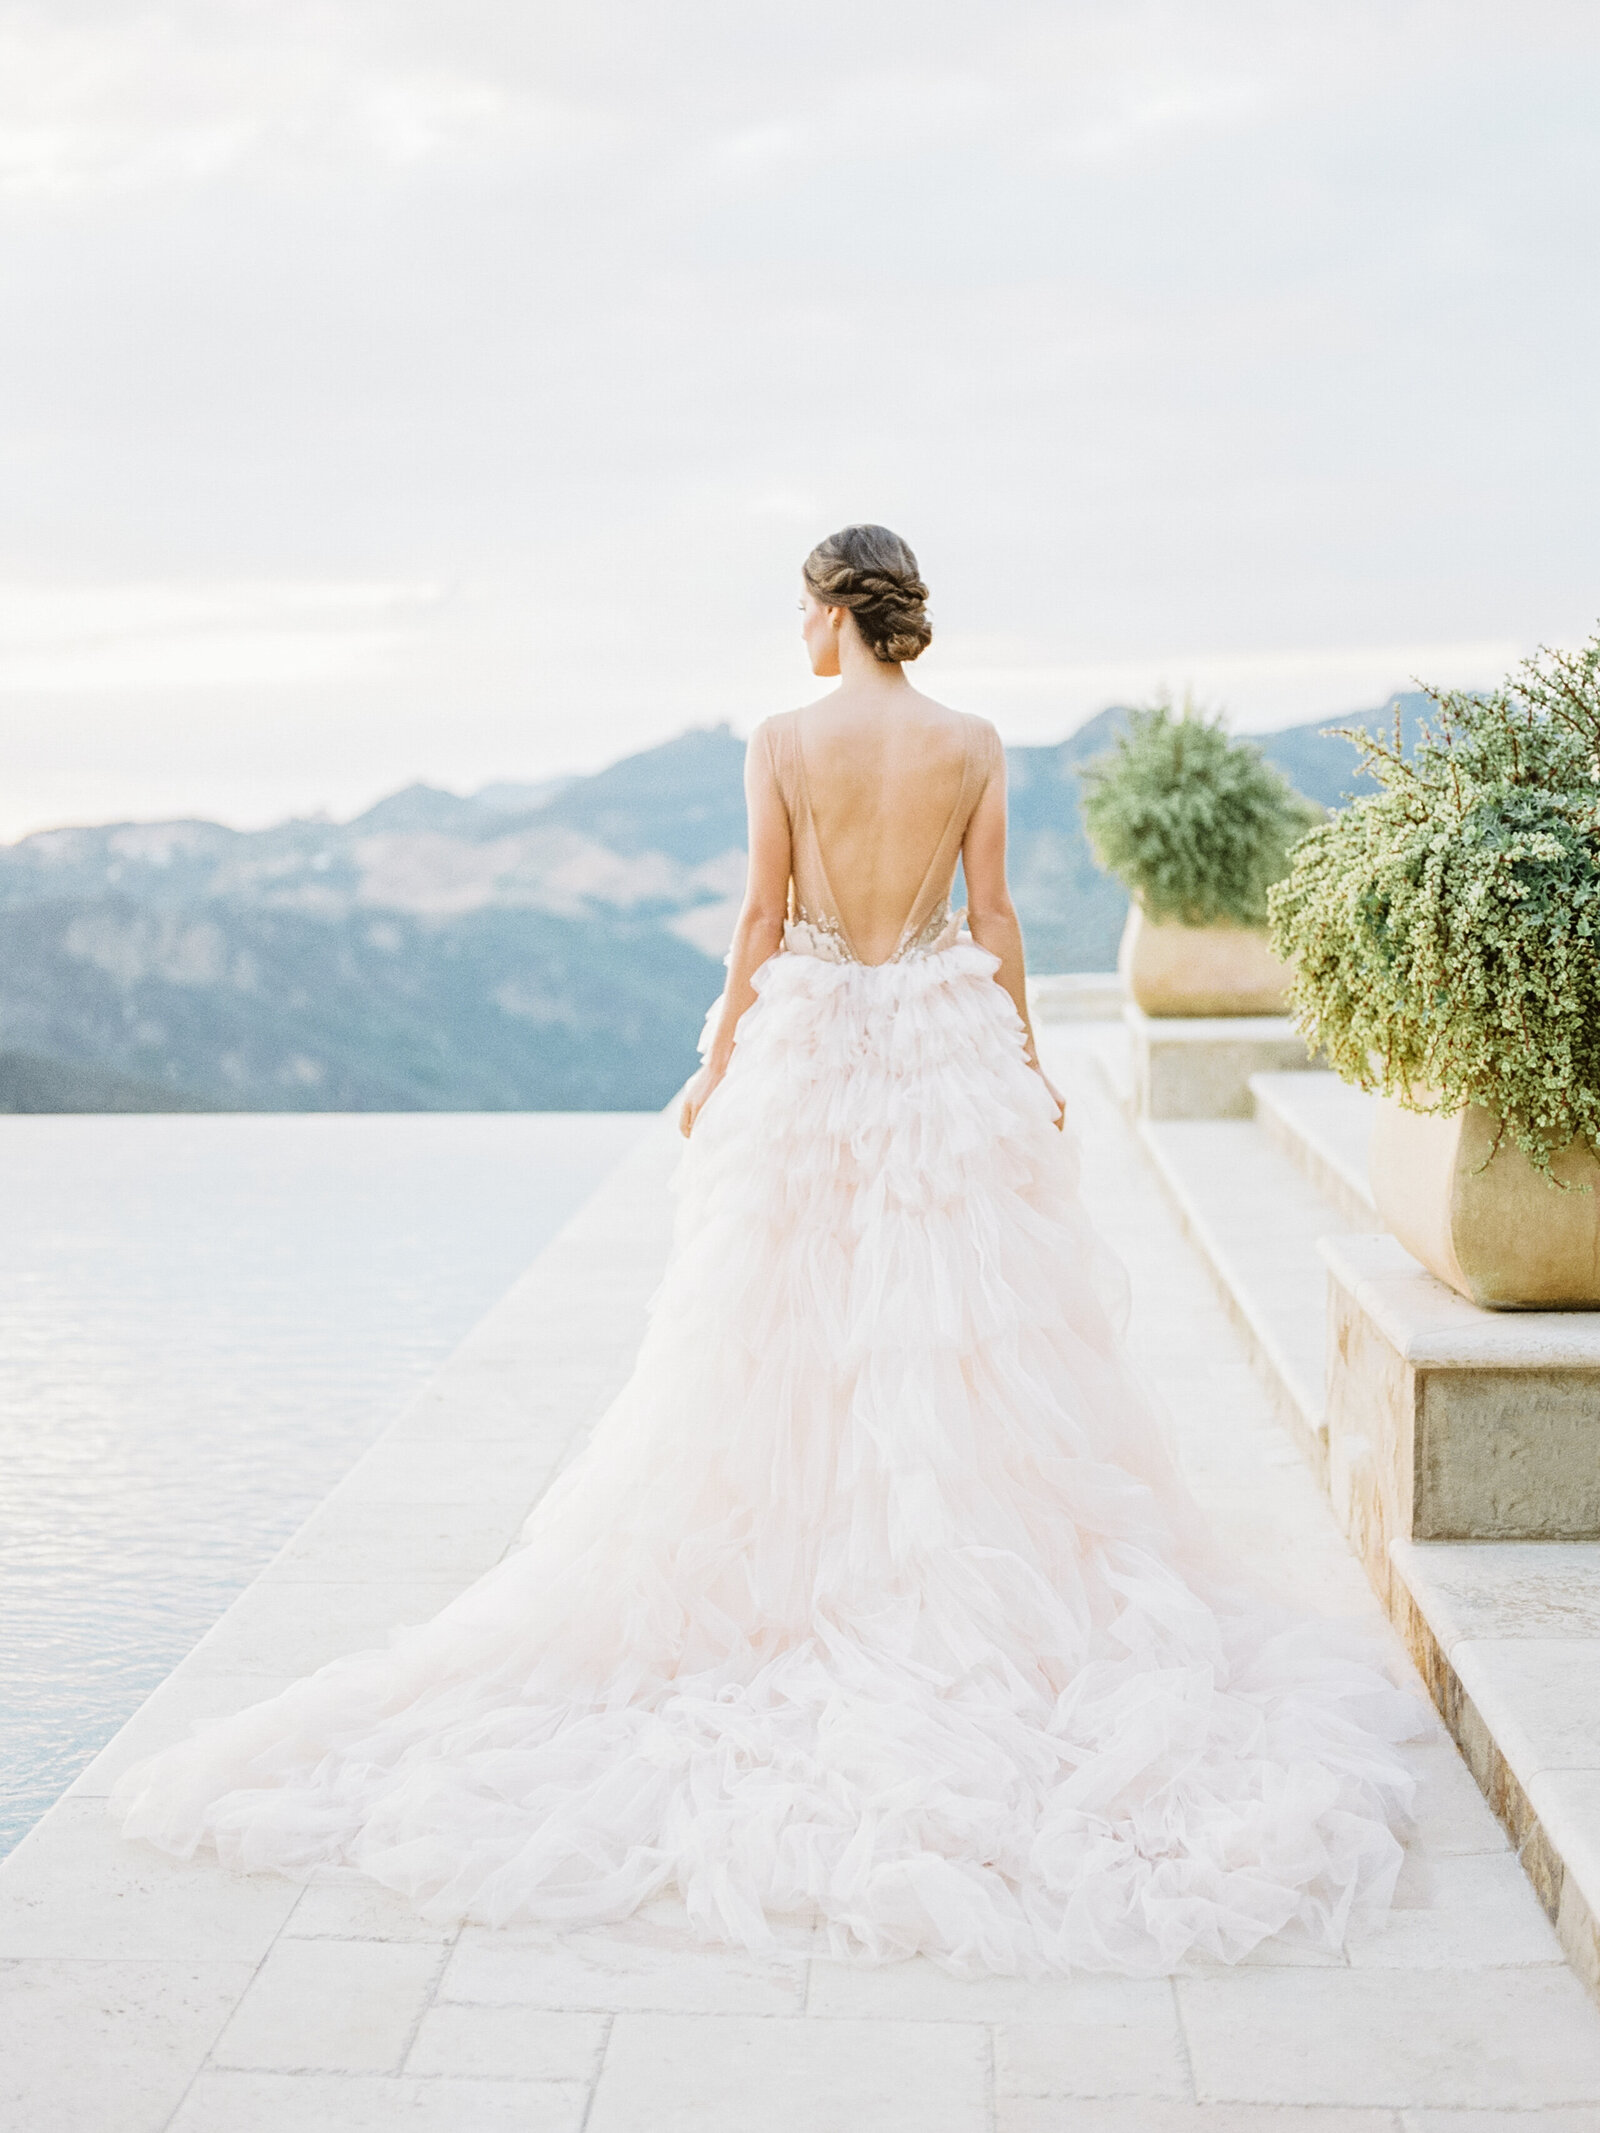 Malibu-Rocky-Oaks-Wedding-Bridal-Editorial-Babsie-01